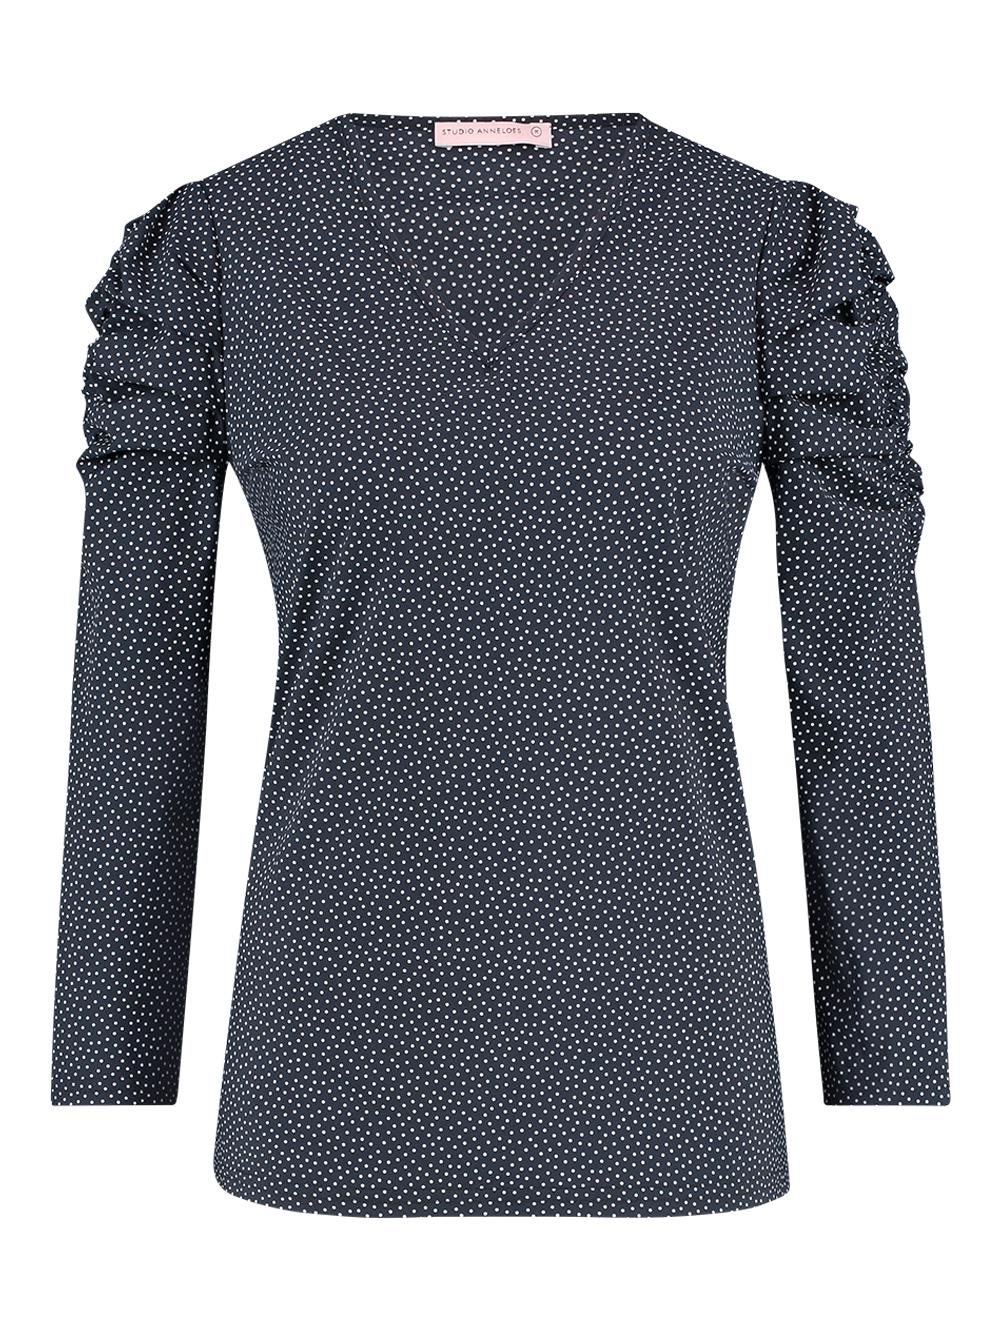 Laure small dot shirt